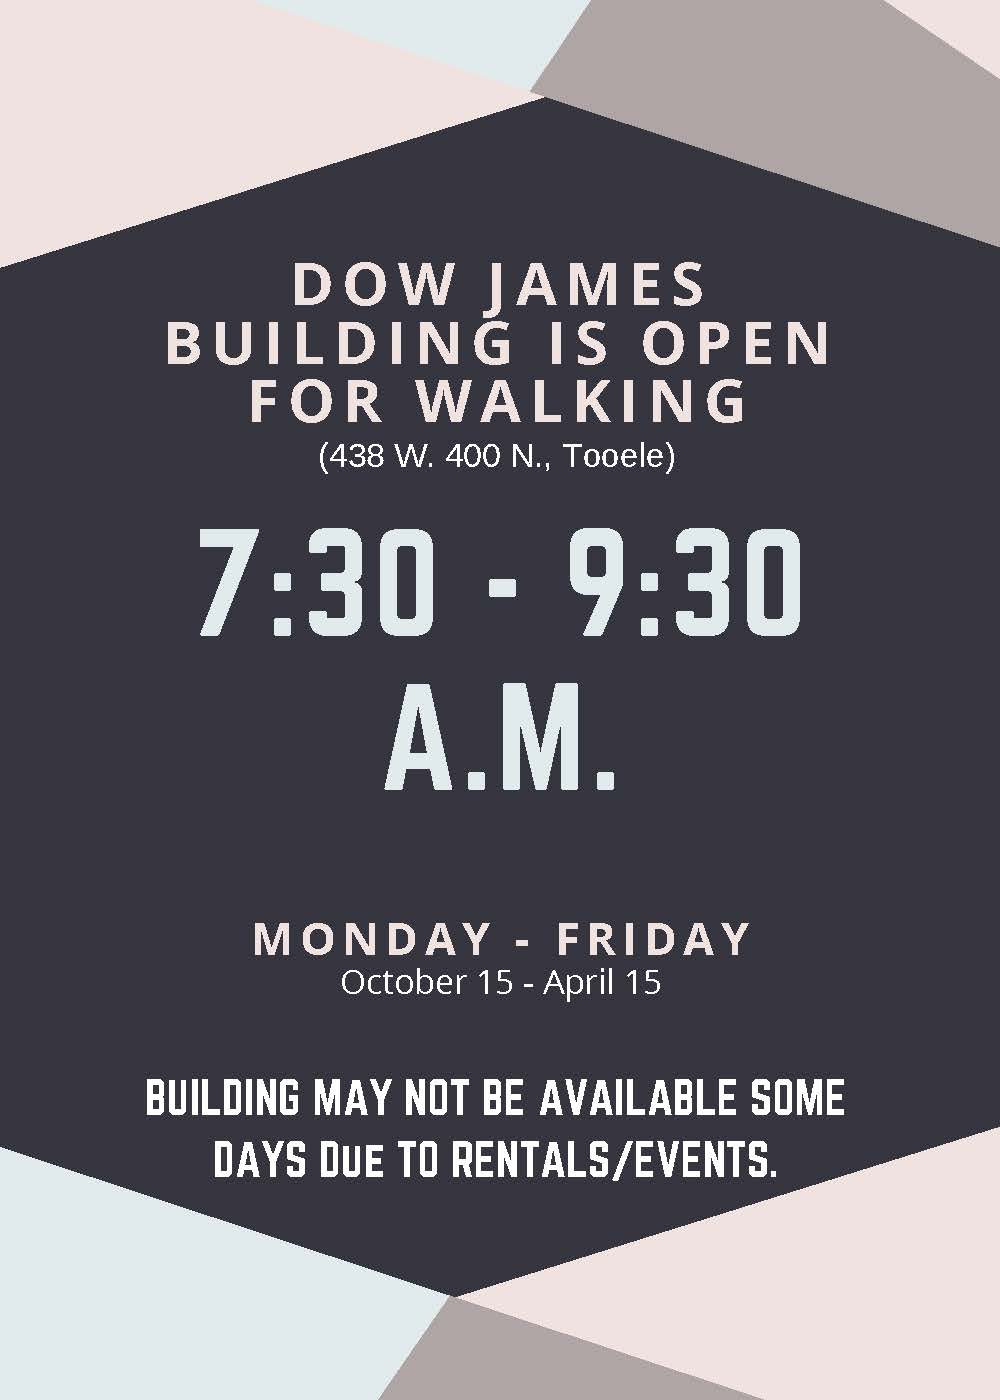 Dow James Building is Open for Walking 2018